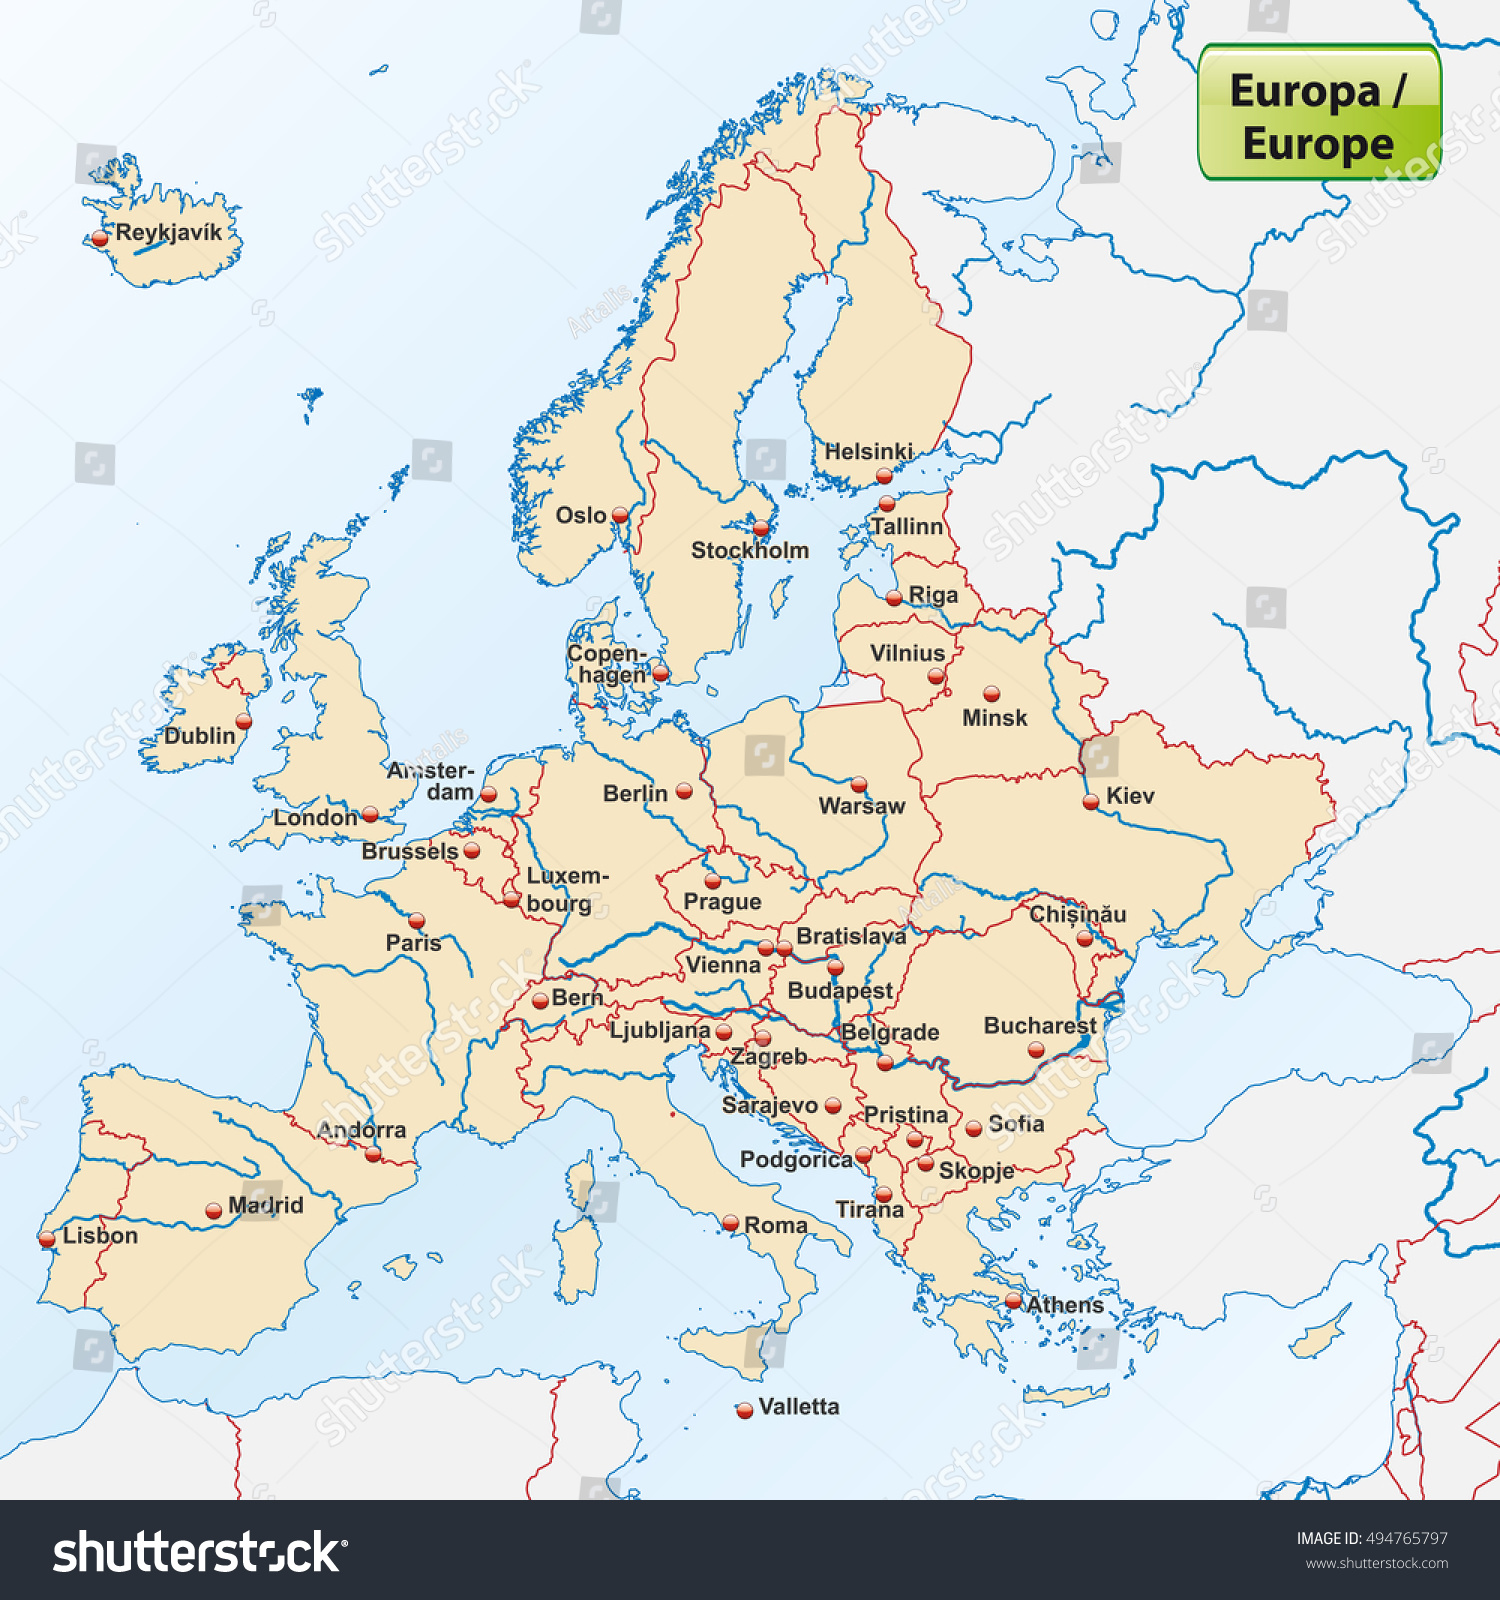 Map Europe Capital Cities Stock Vector Shutterstock - Map of europe with capital cities